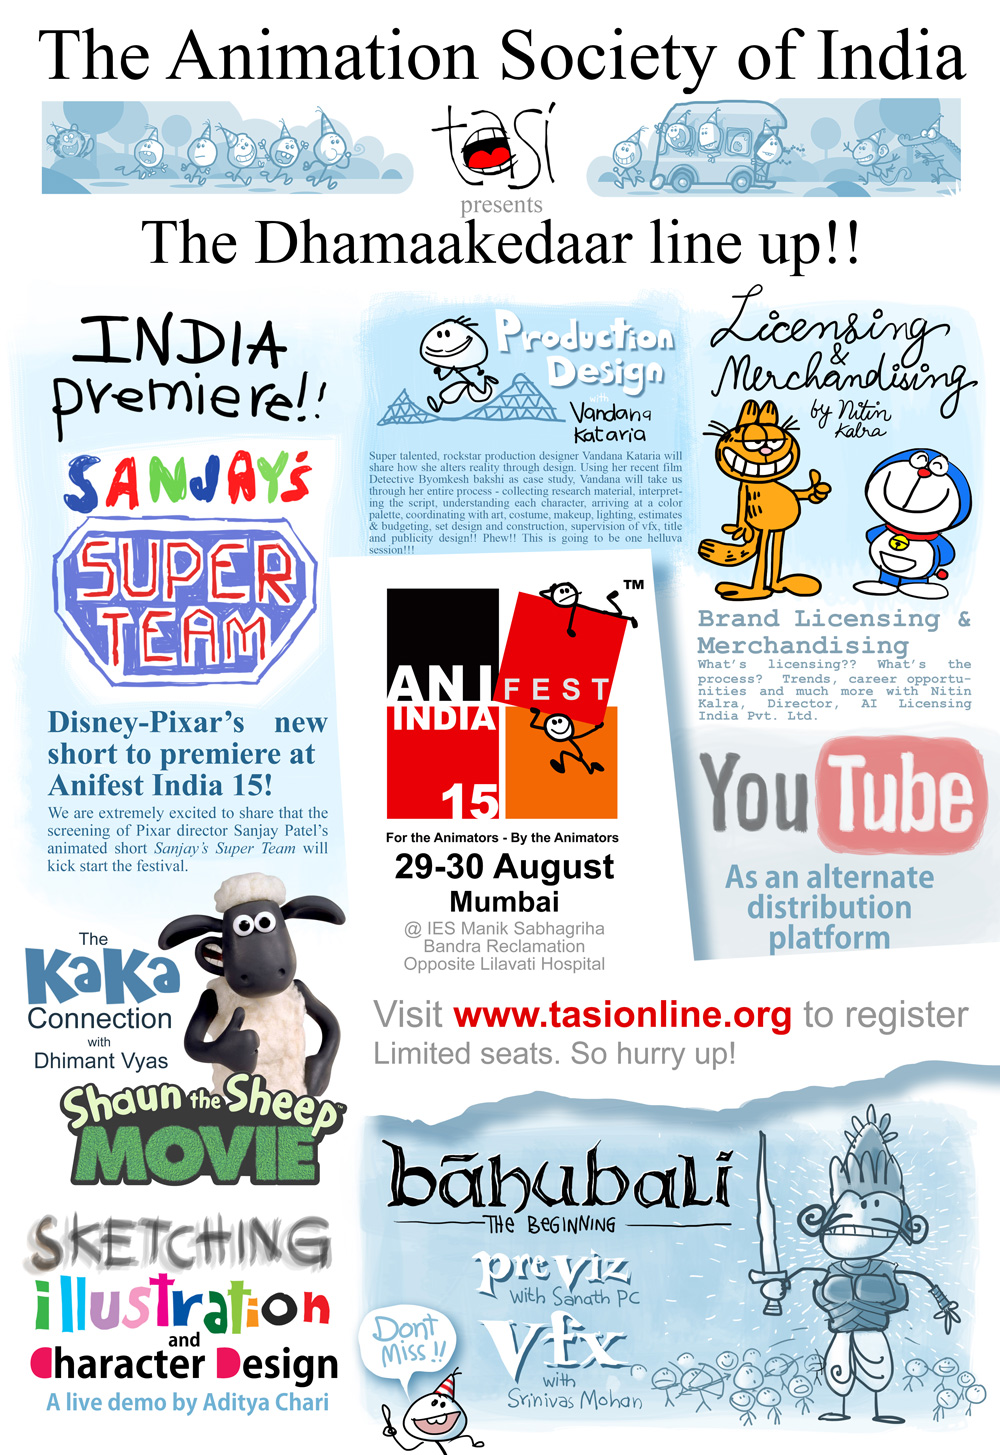 Anifest India 2015 Sessions